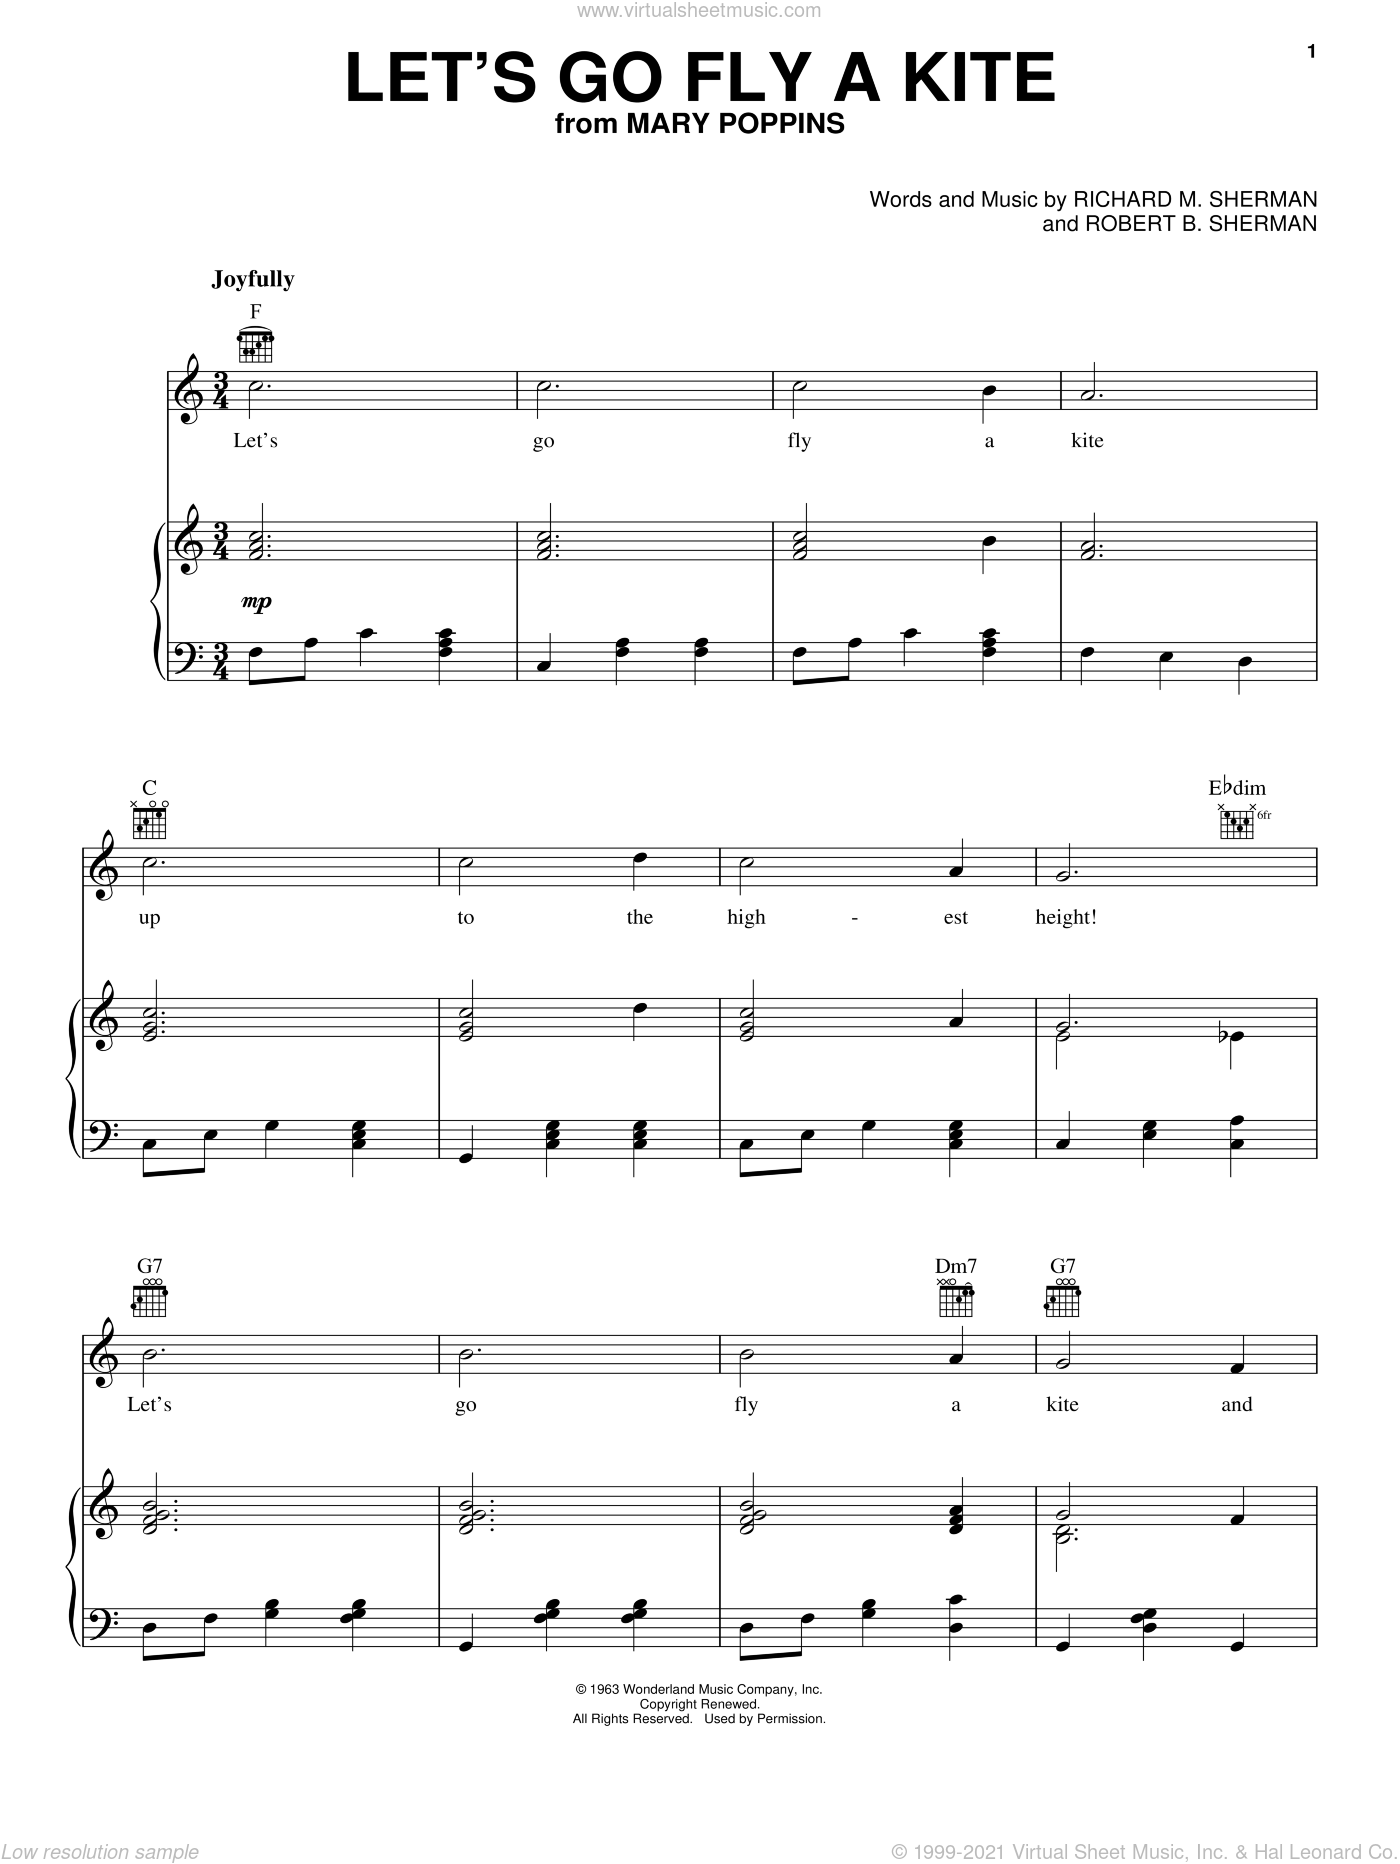 Let's Go Fly A Kite sheet music for voice, piano or guitar by Dave Tomlinson, Mary Poppins (Movie), Sherman Brothers, Richard M. Sherman and Robert B. Sherman, intermediate skill level